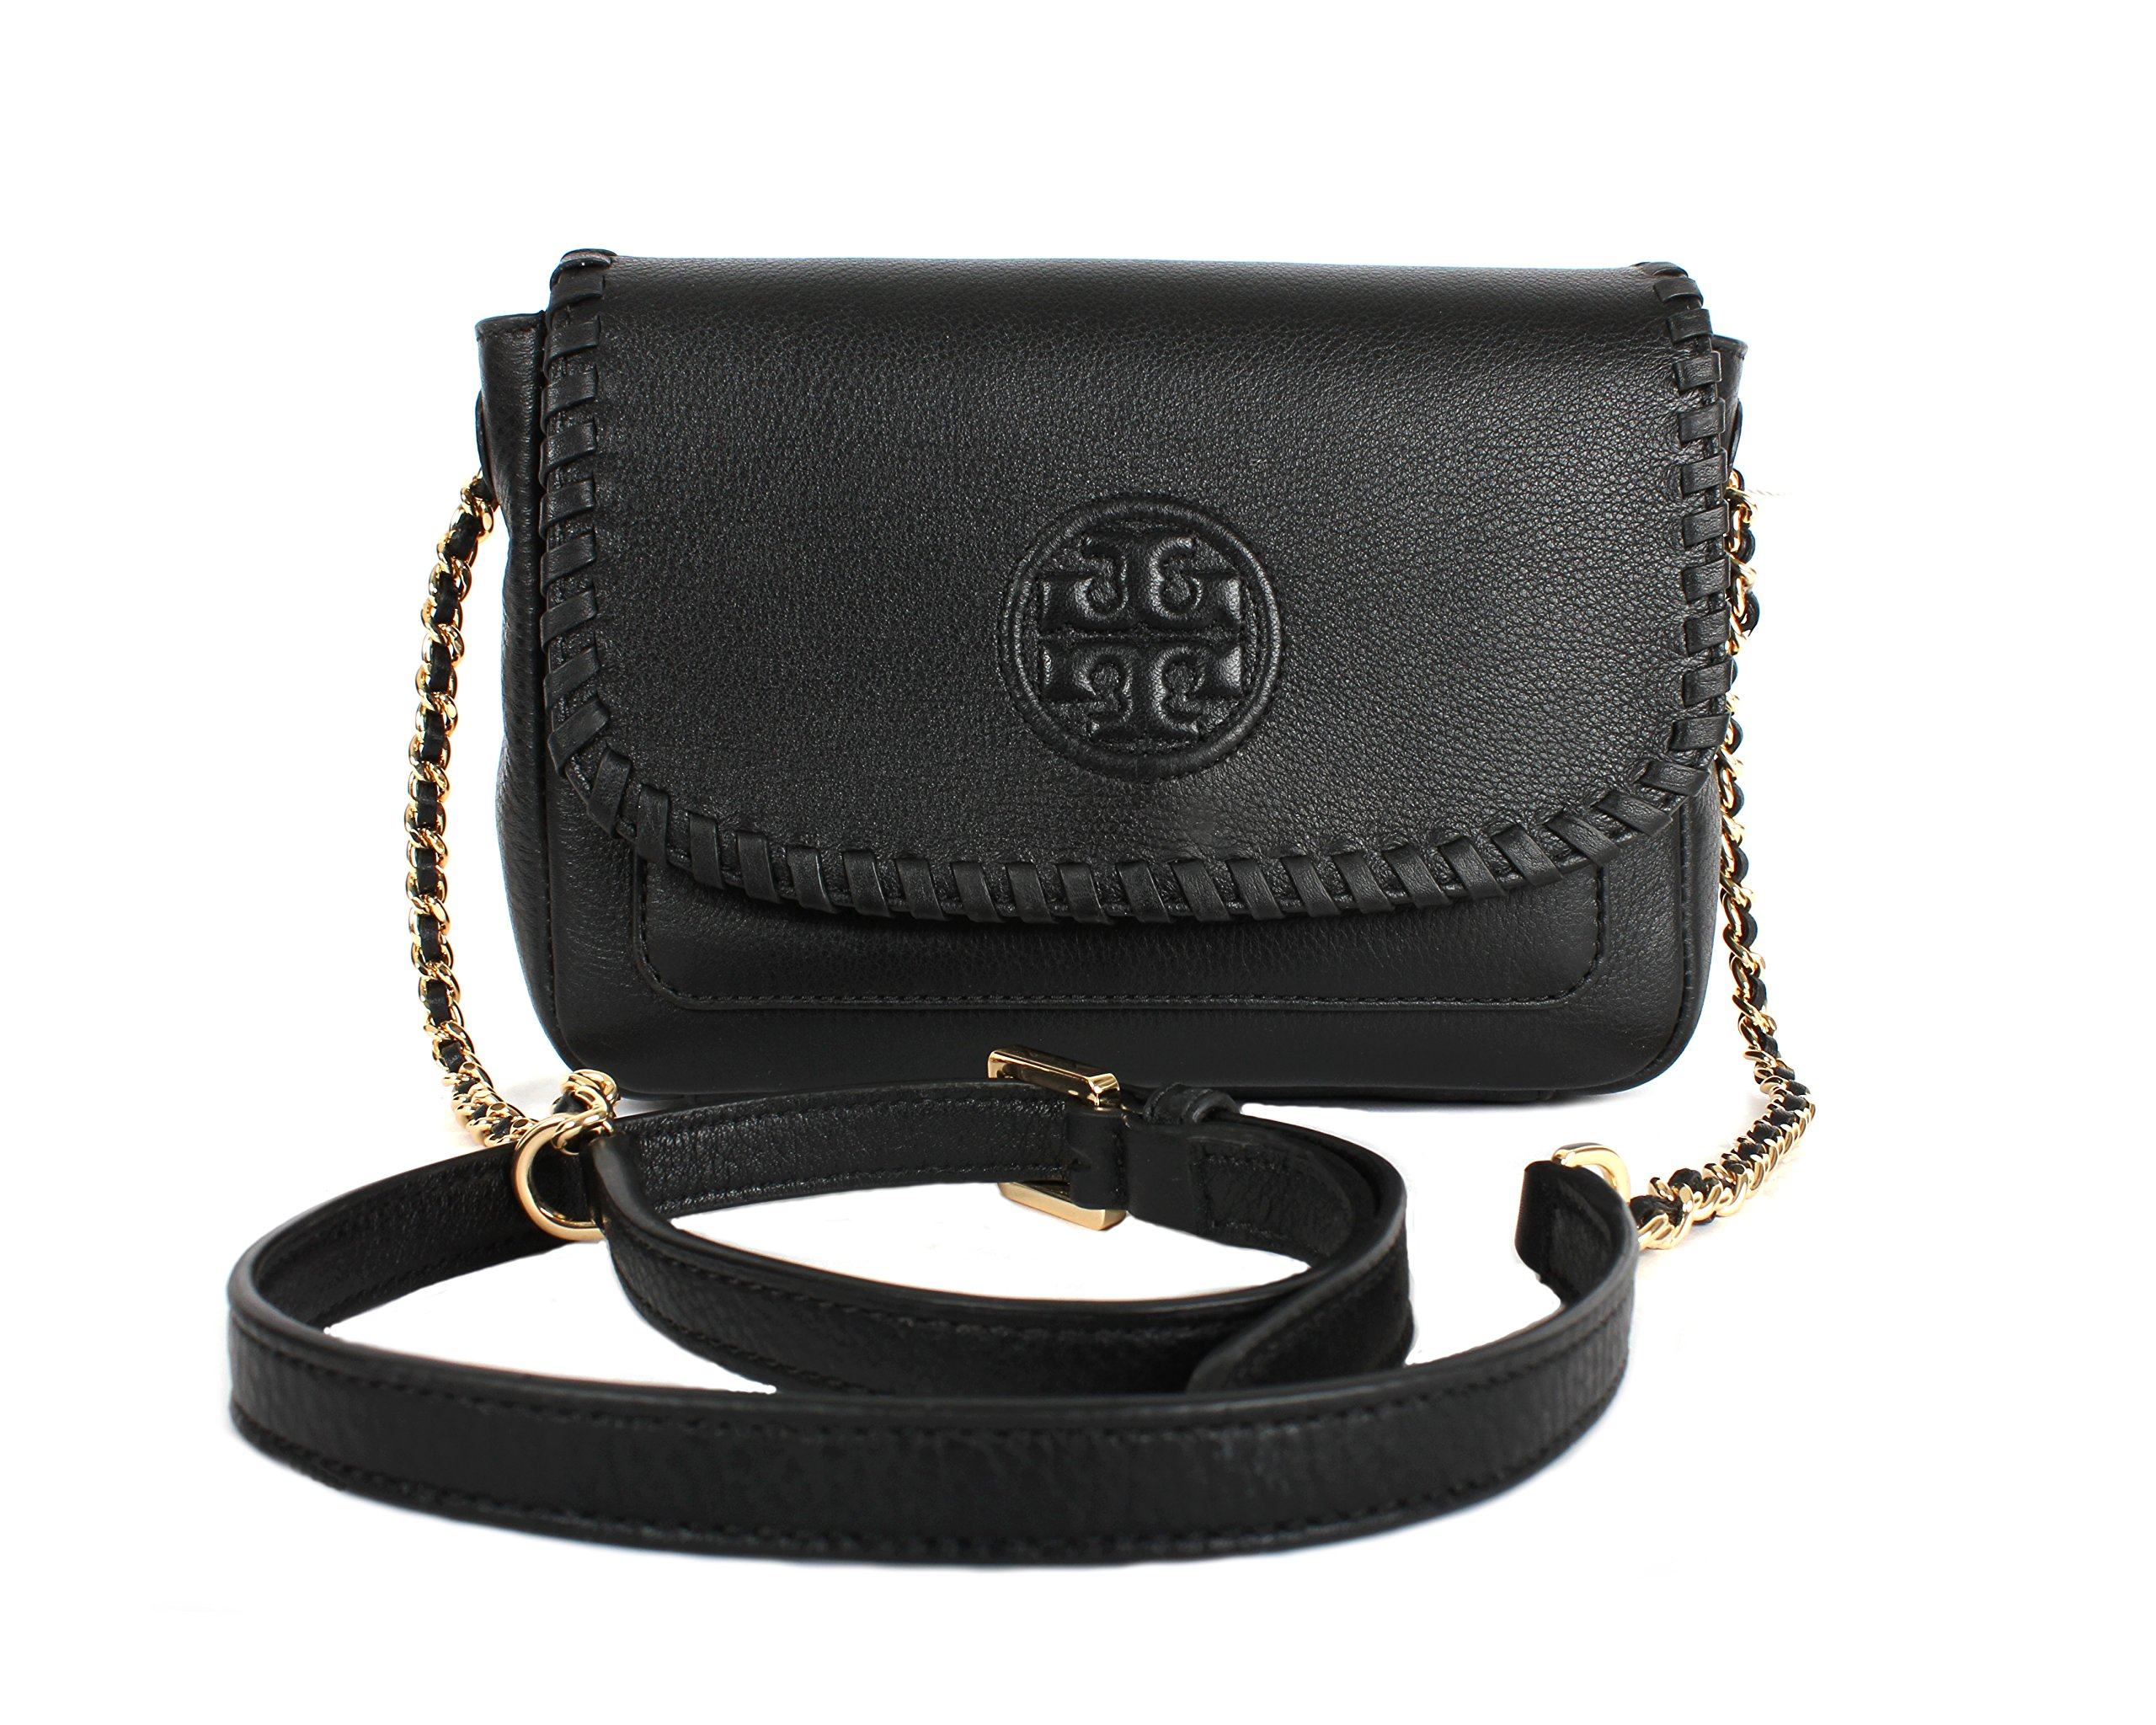 Tory Burch Marion Mini Bag, Black, Style No. 40804 by Tory Burch